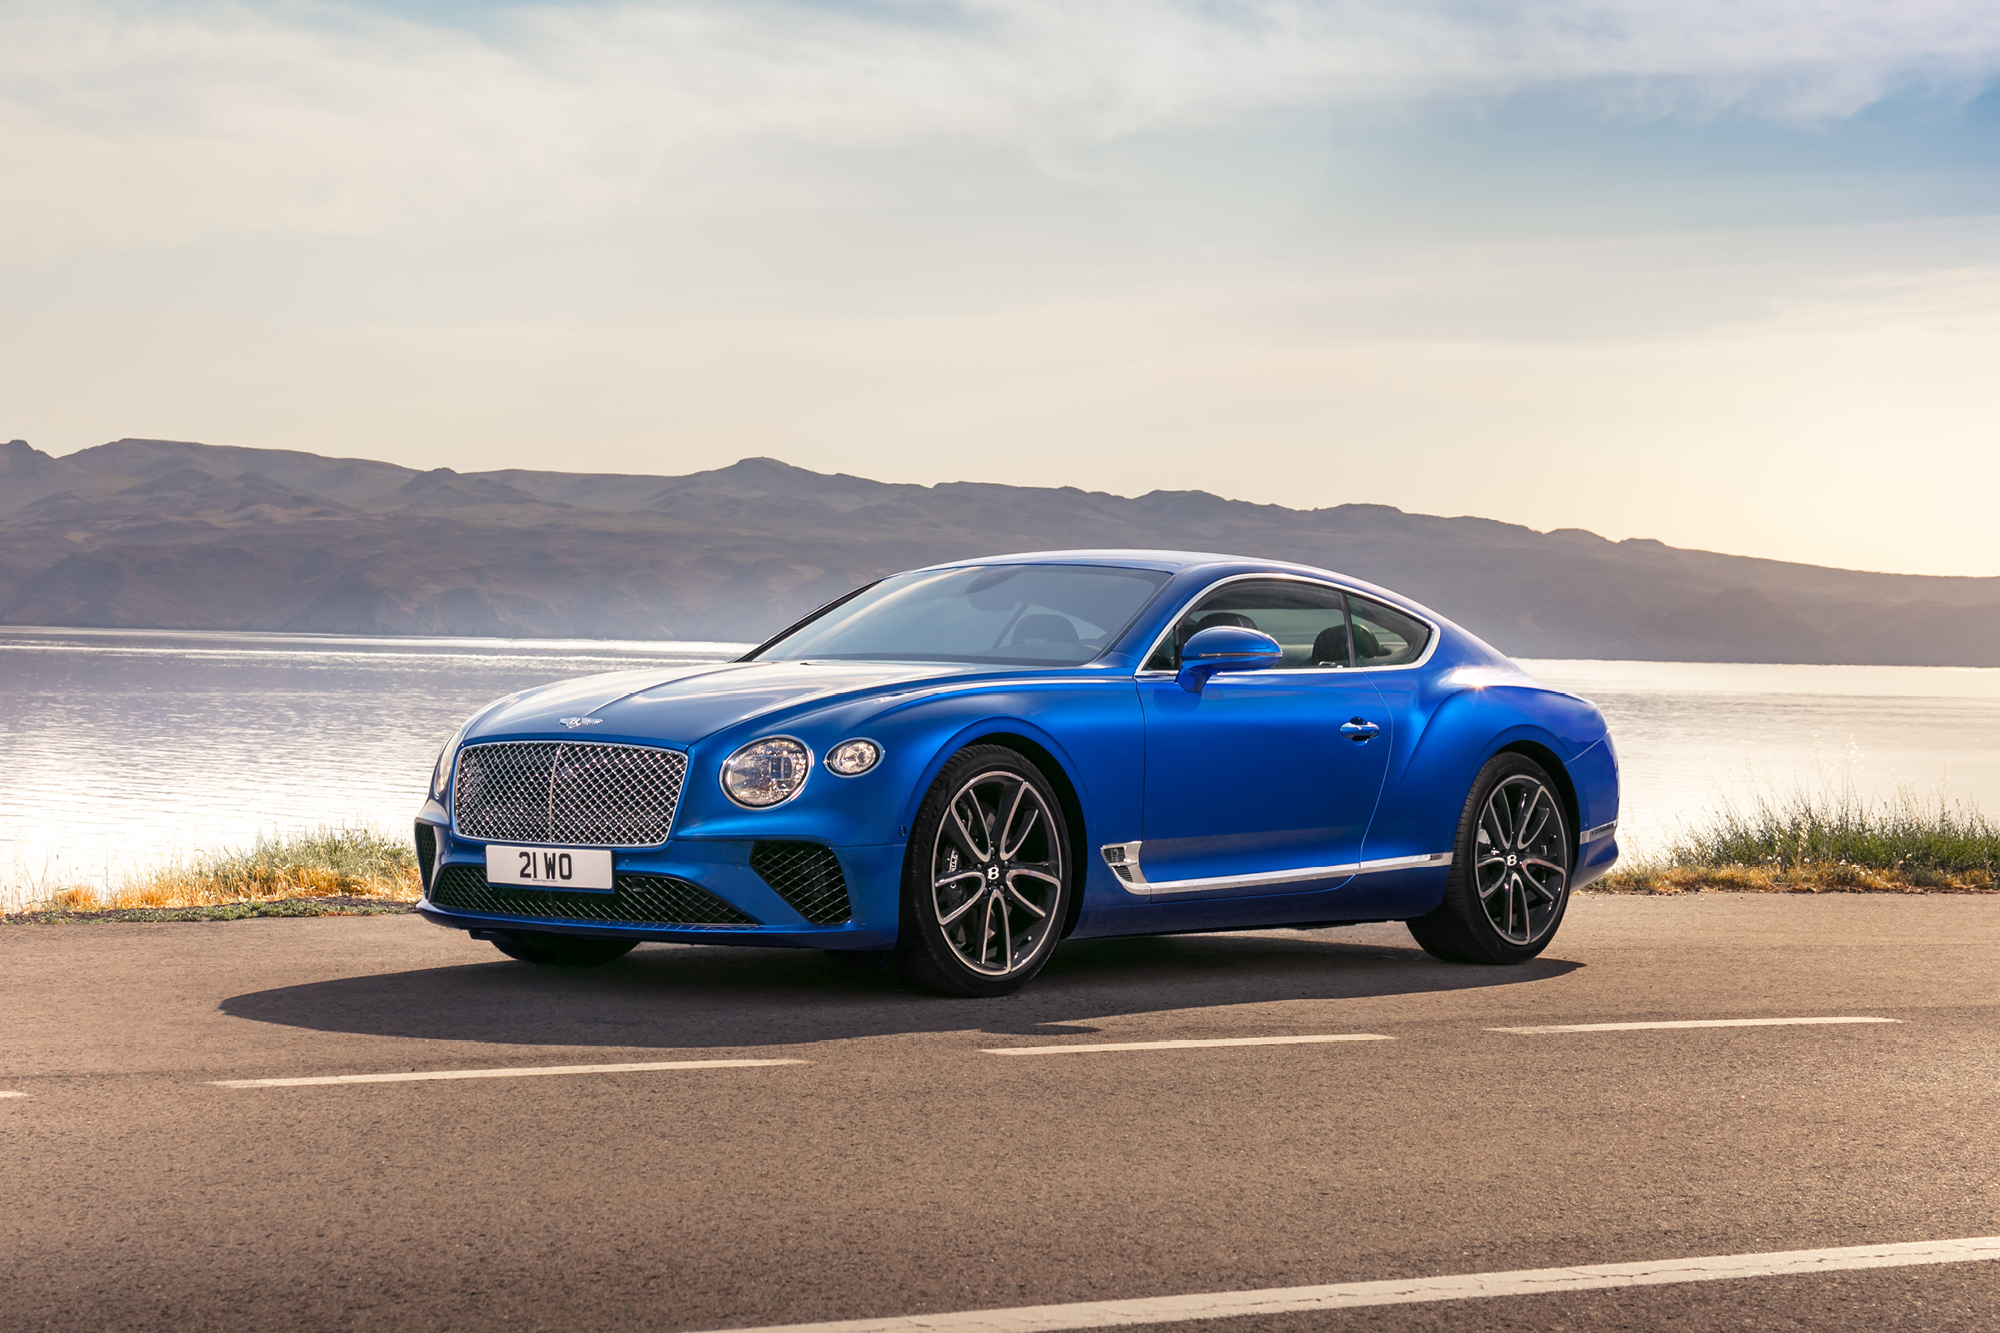 The 2018 Bentley Continental GT is lighter and faster than its predecessors